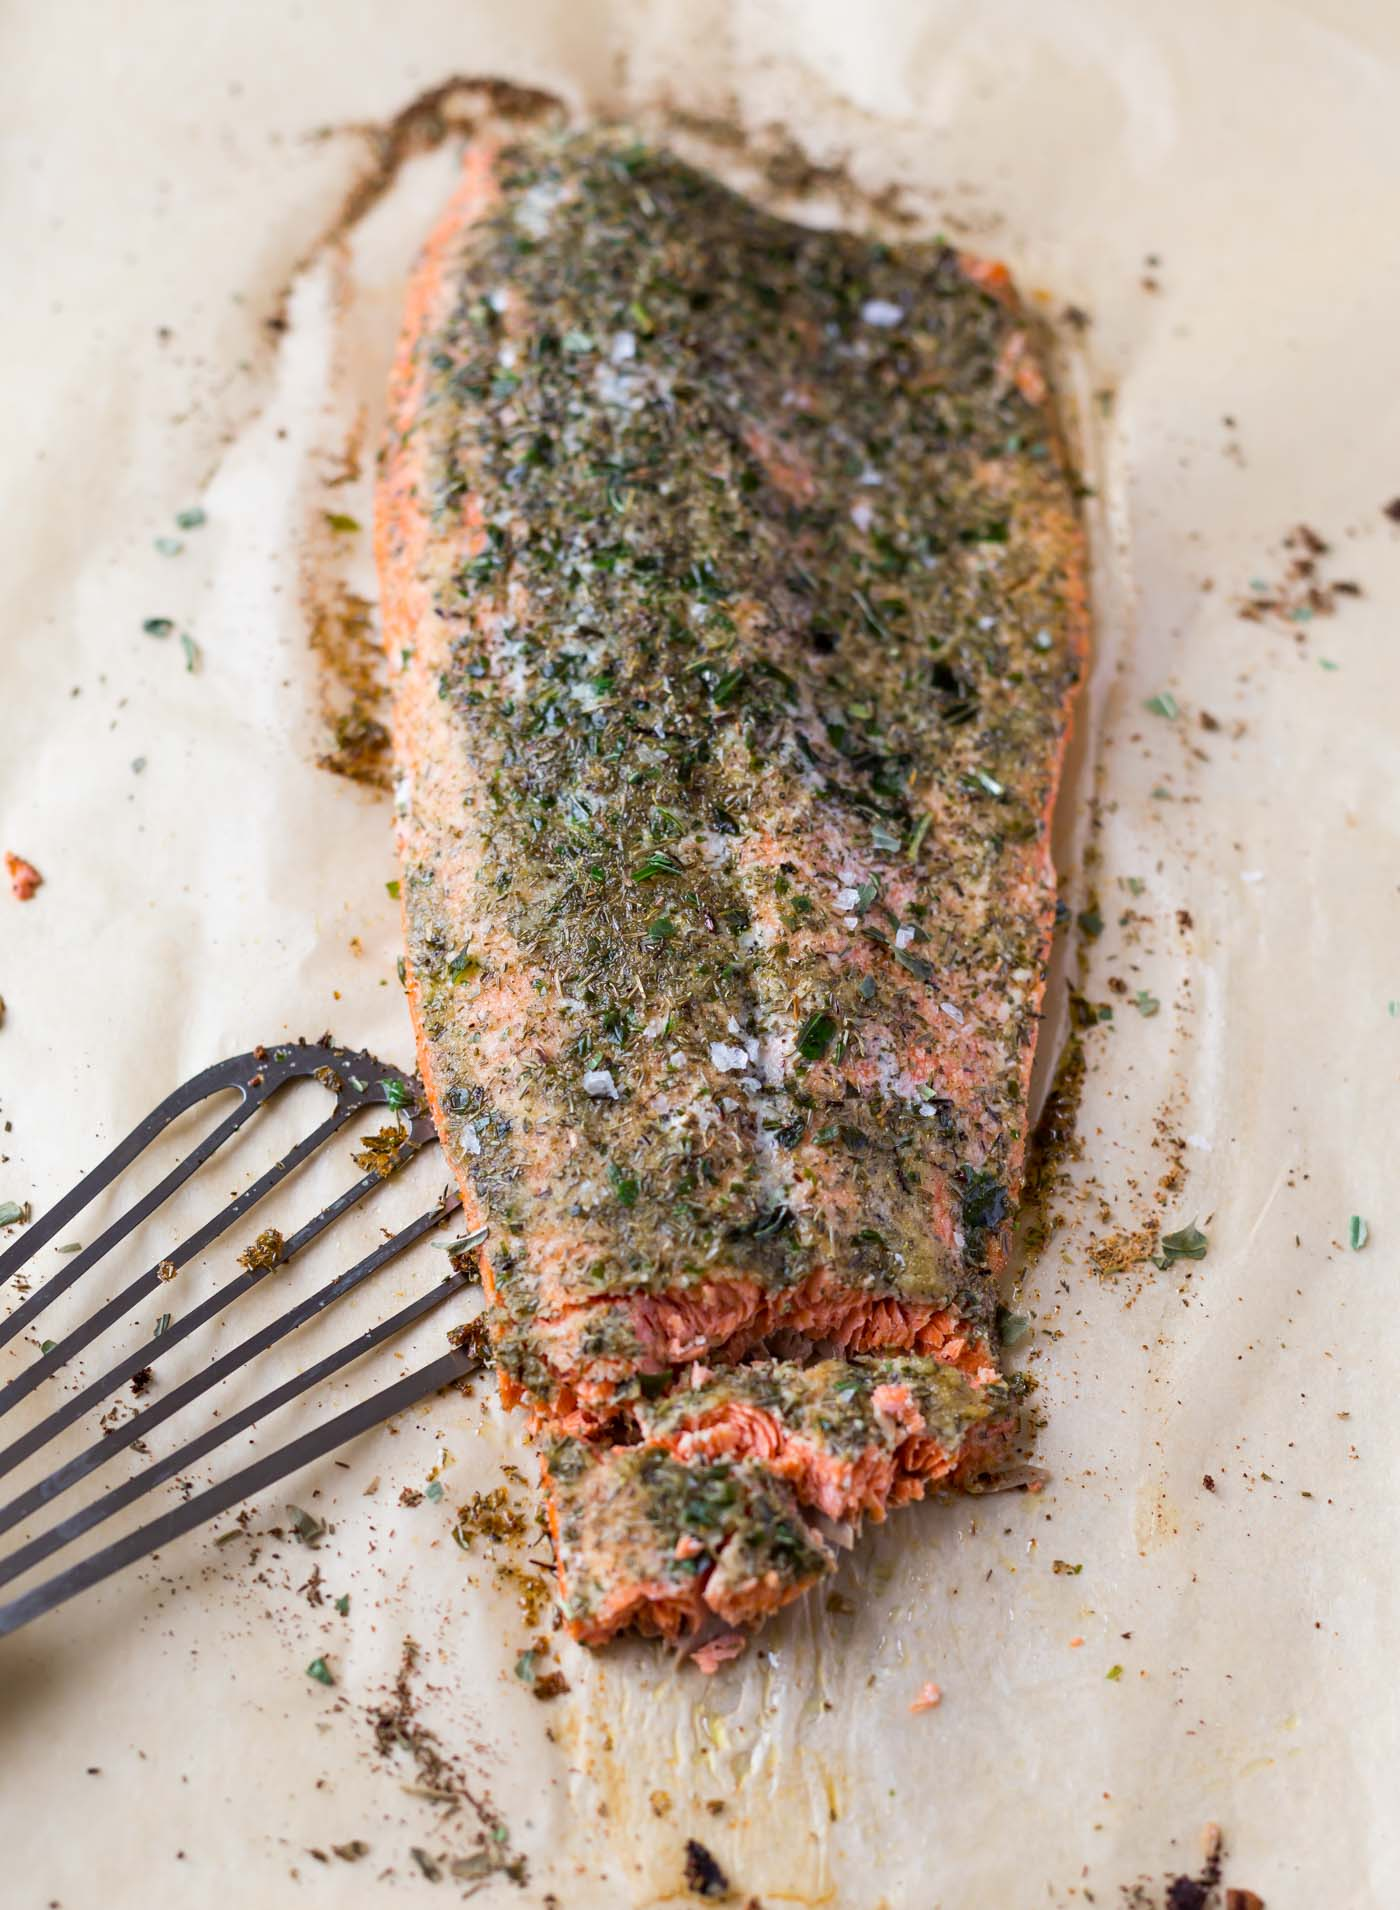 Baked salmon fillet on parchment paper with fish spatula